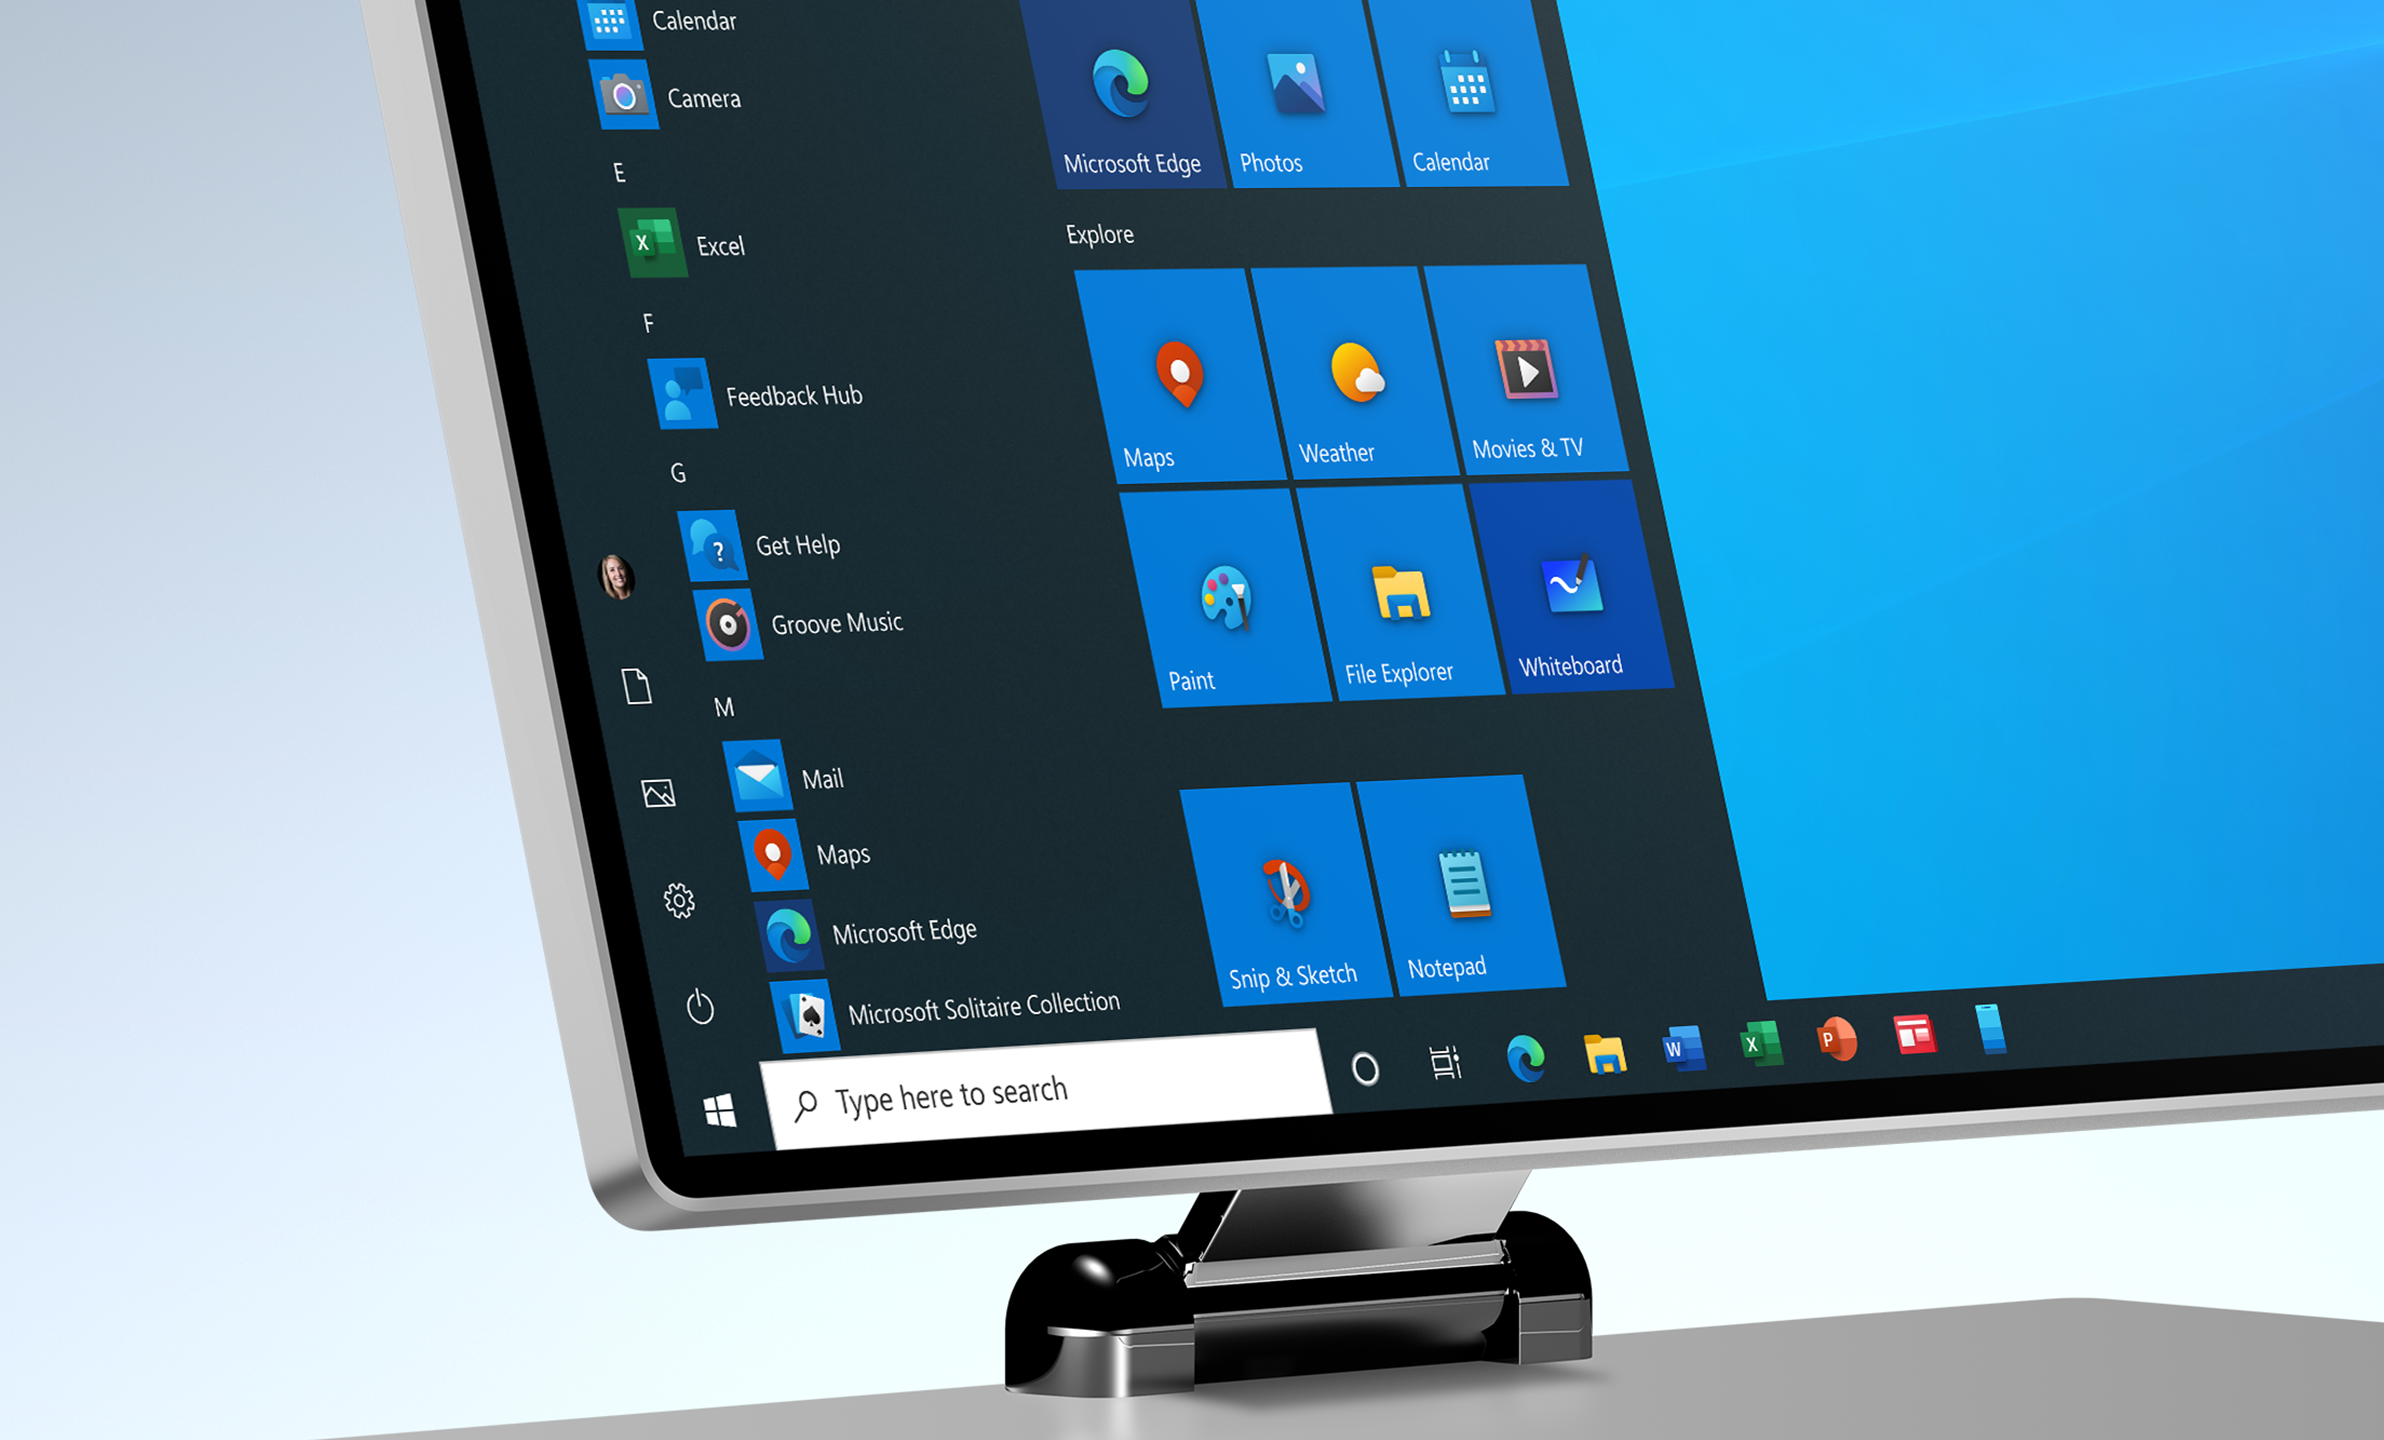 The Windows 10 Start menu showing many of the newly designed icons for the built-in apps.